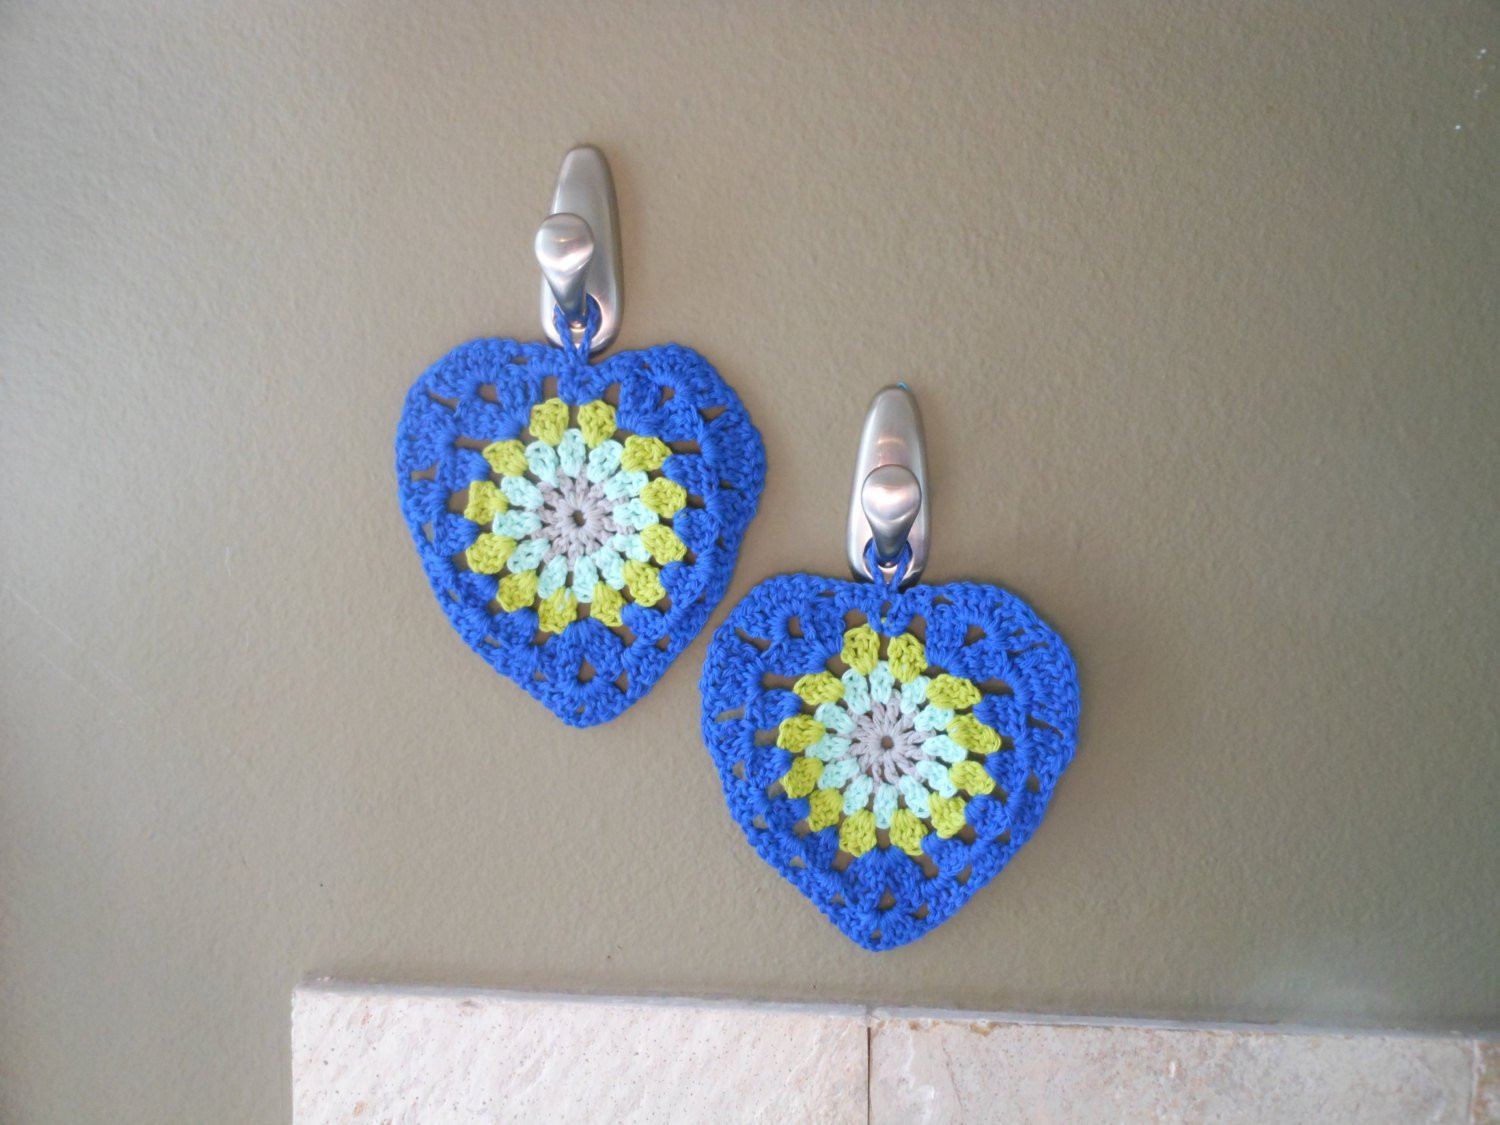 Best Of Hanging Wall Decor Crochet Kitchen Decor by Kingstitchstudios Crochet Decor Of Brilliant 47 Pics Crochet Decor